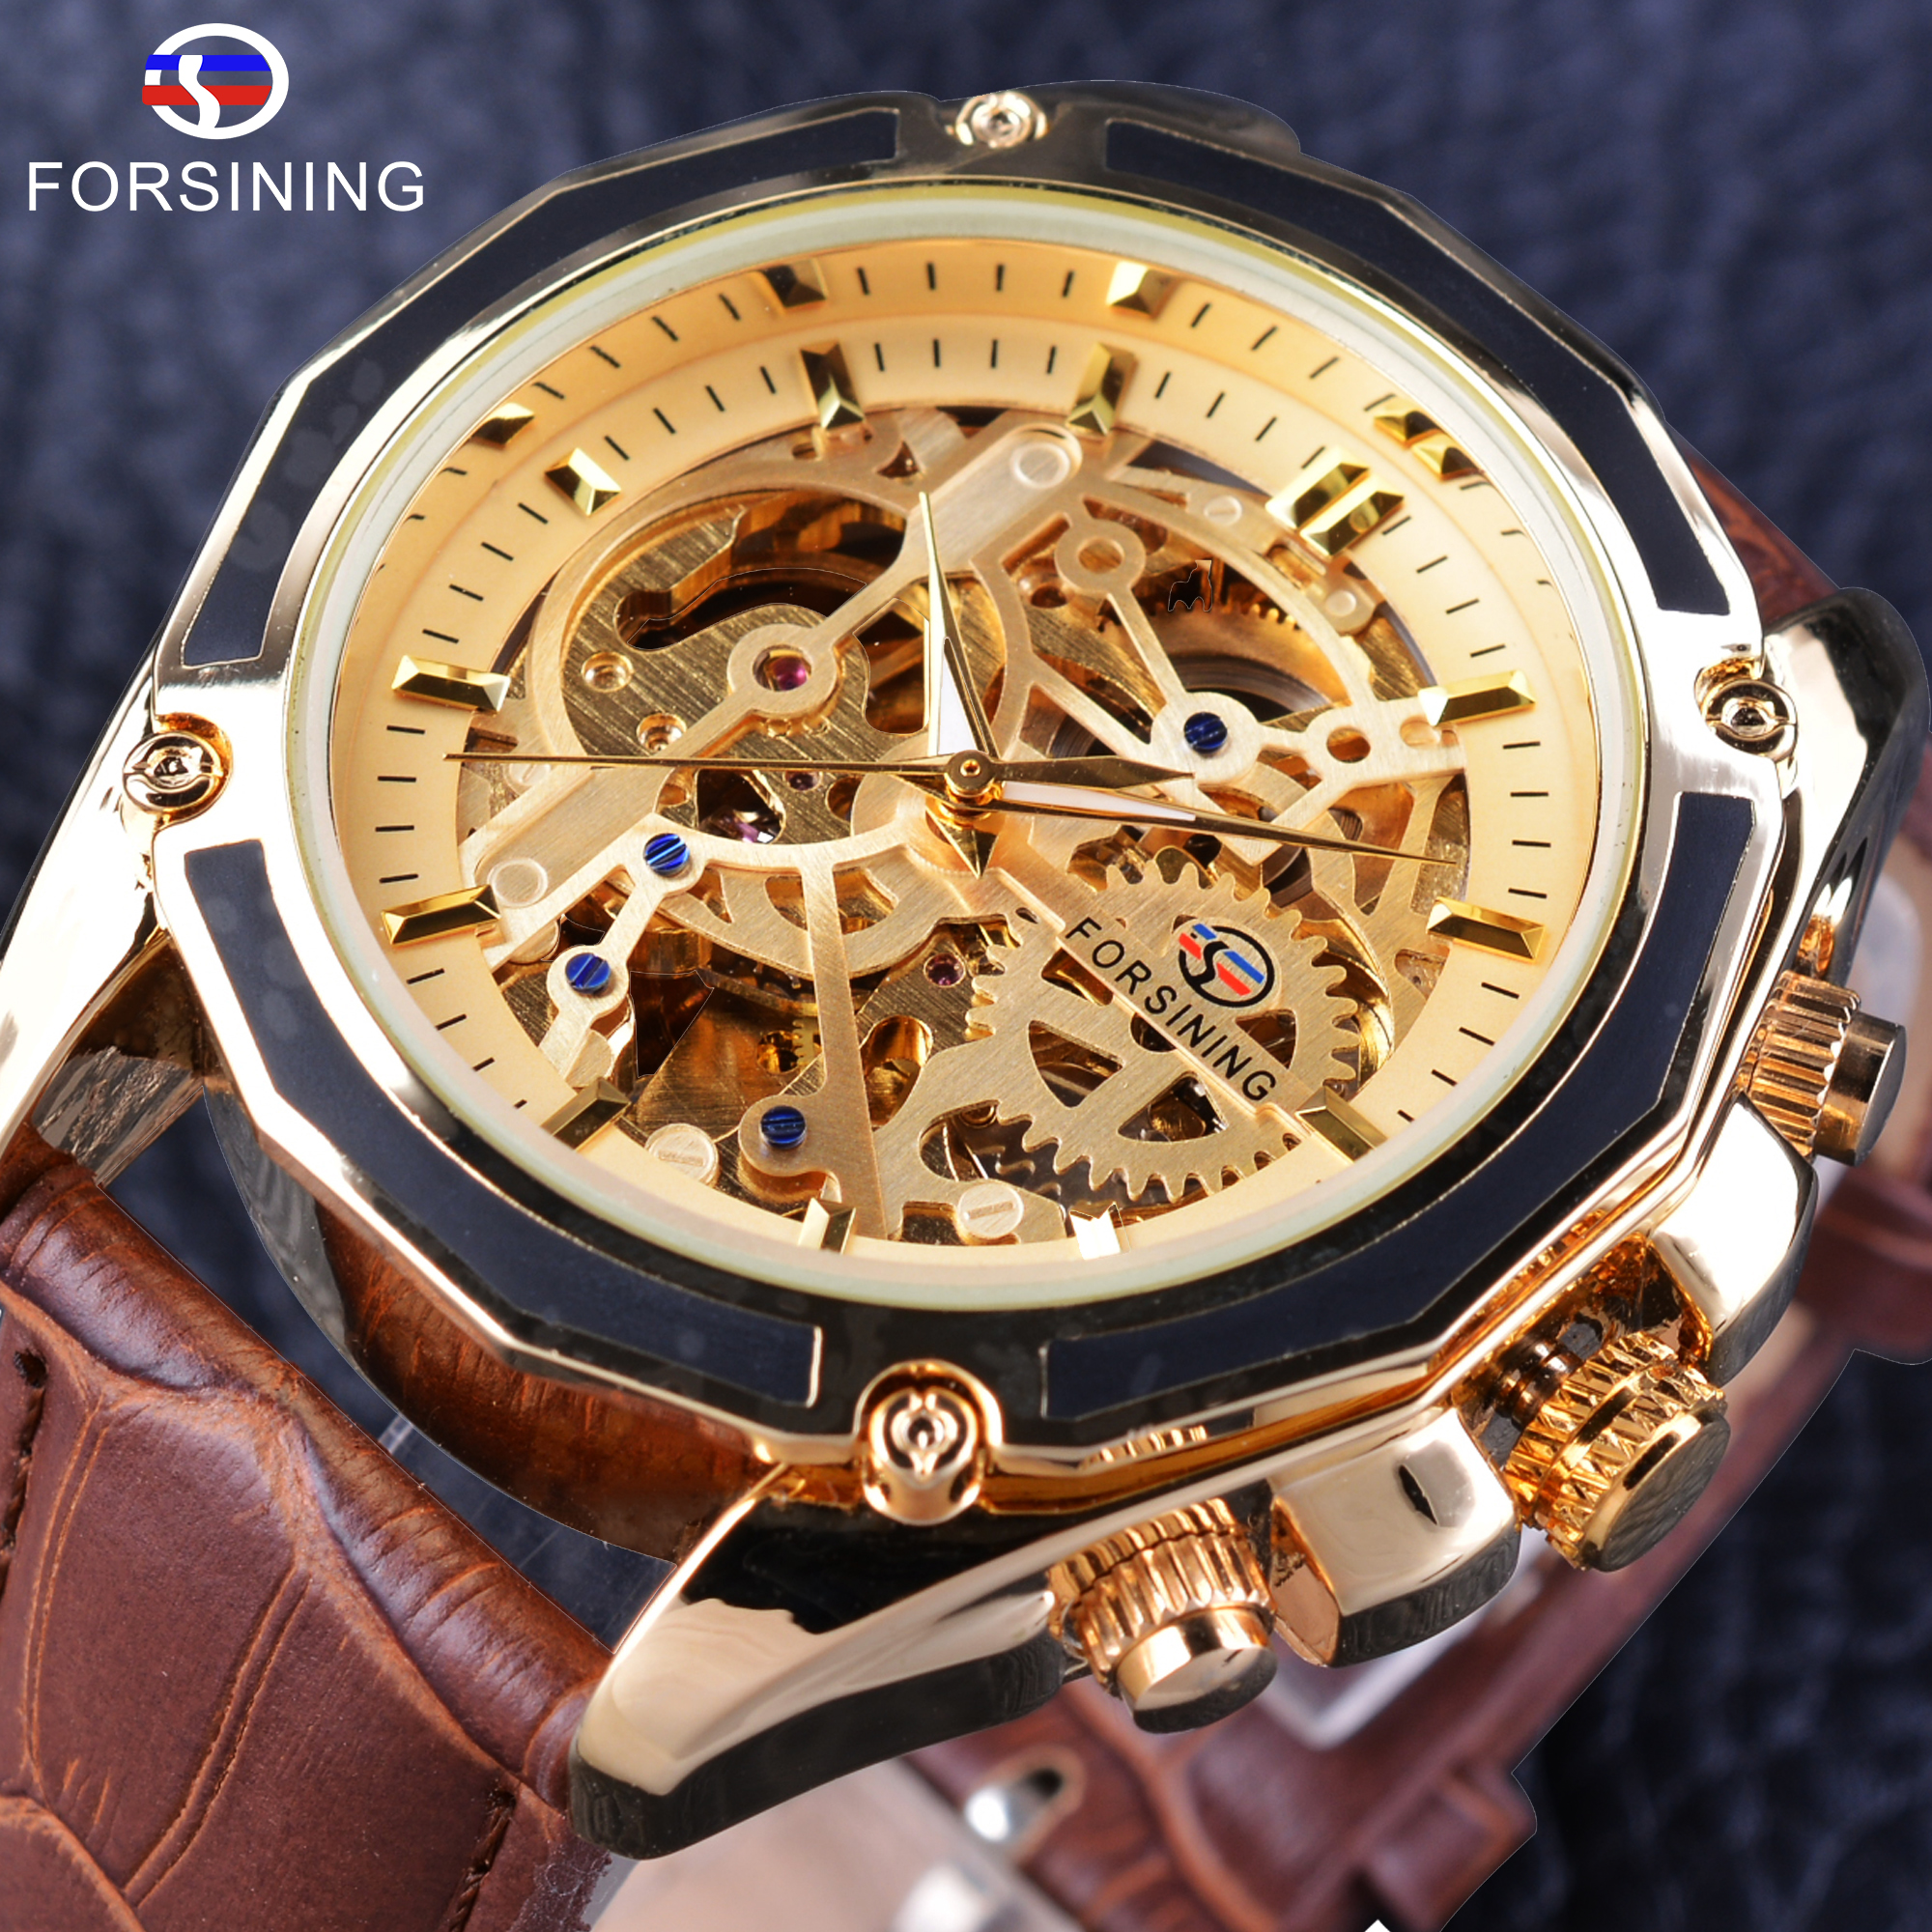 Forsining Transparent Luxury Gear Steampunk Brown Genuine Leather Belt Golden Movement Inside Self Winding Automatic Wrist Watch